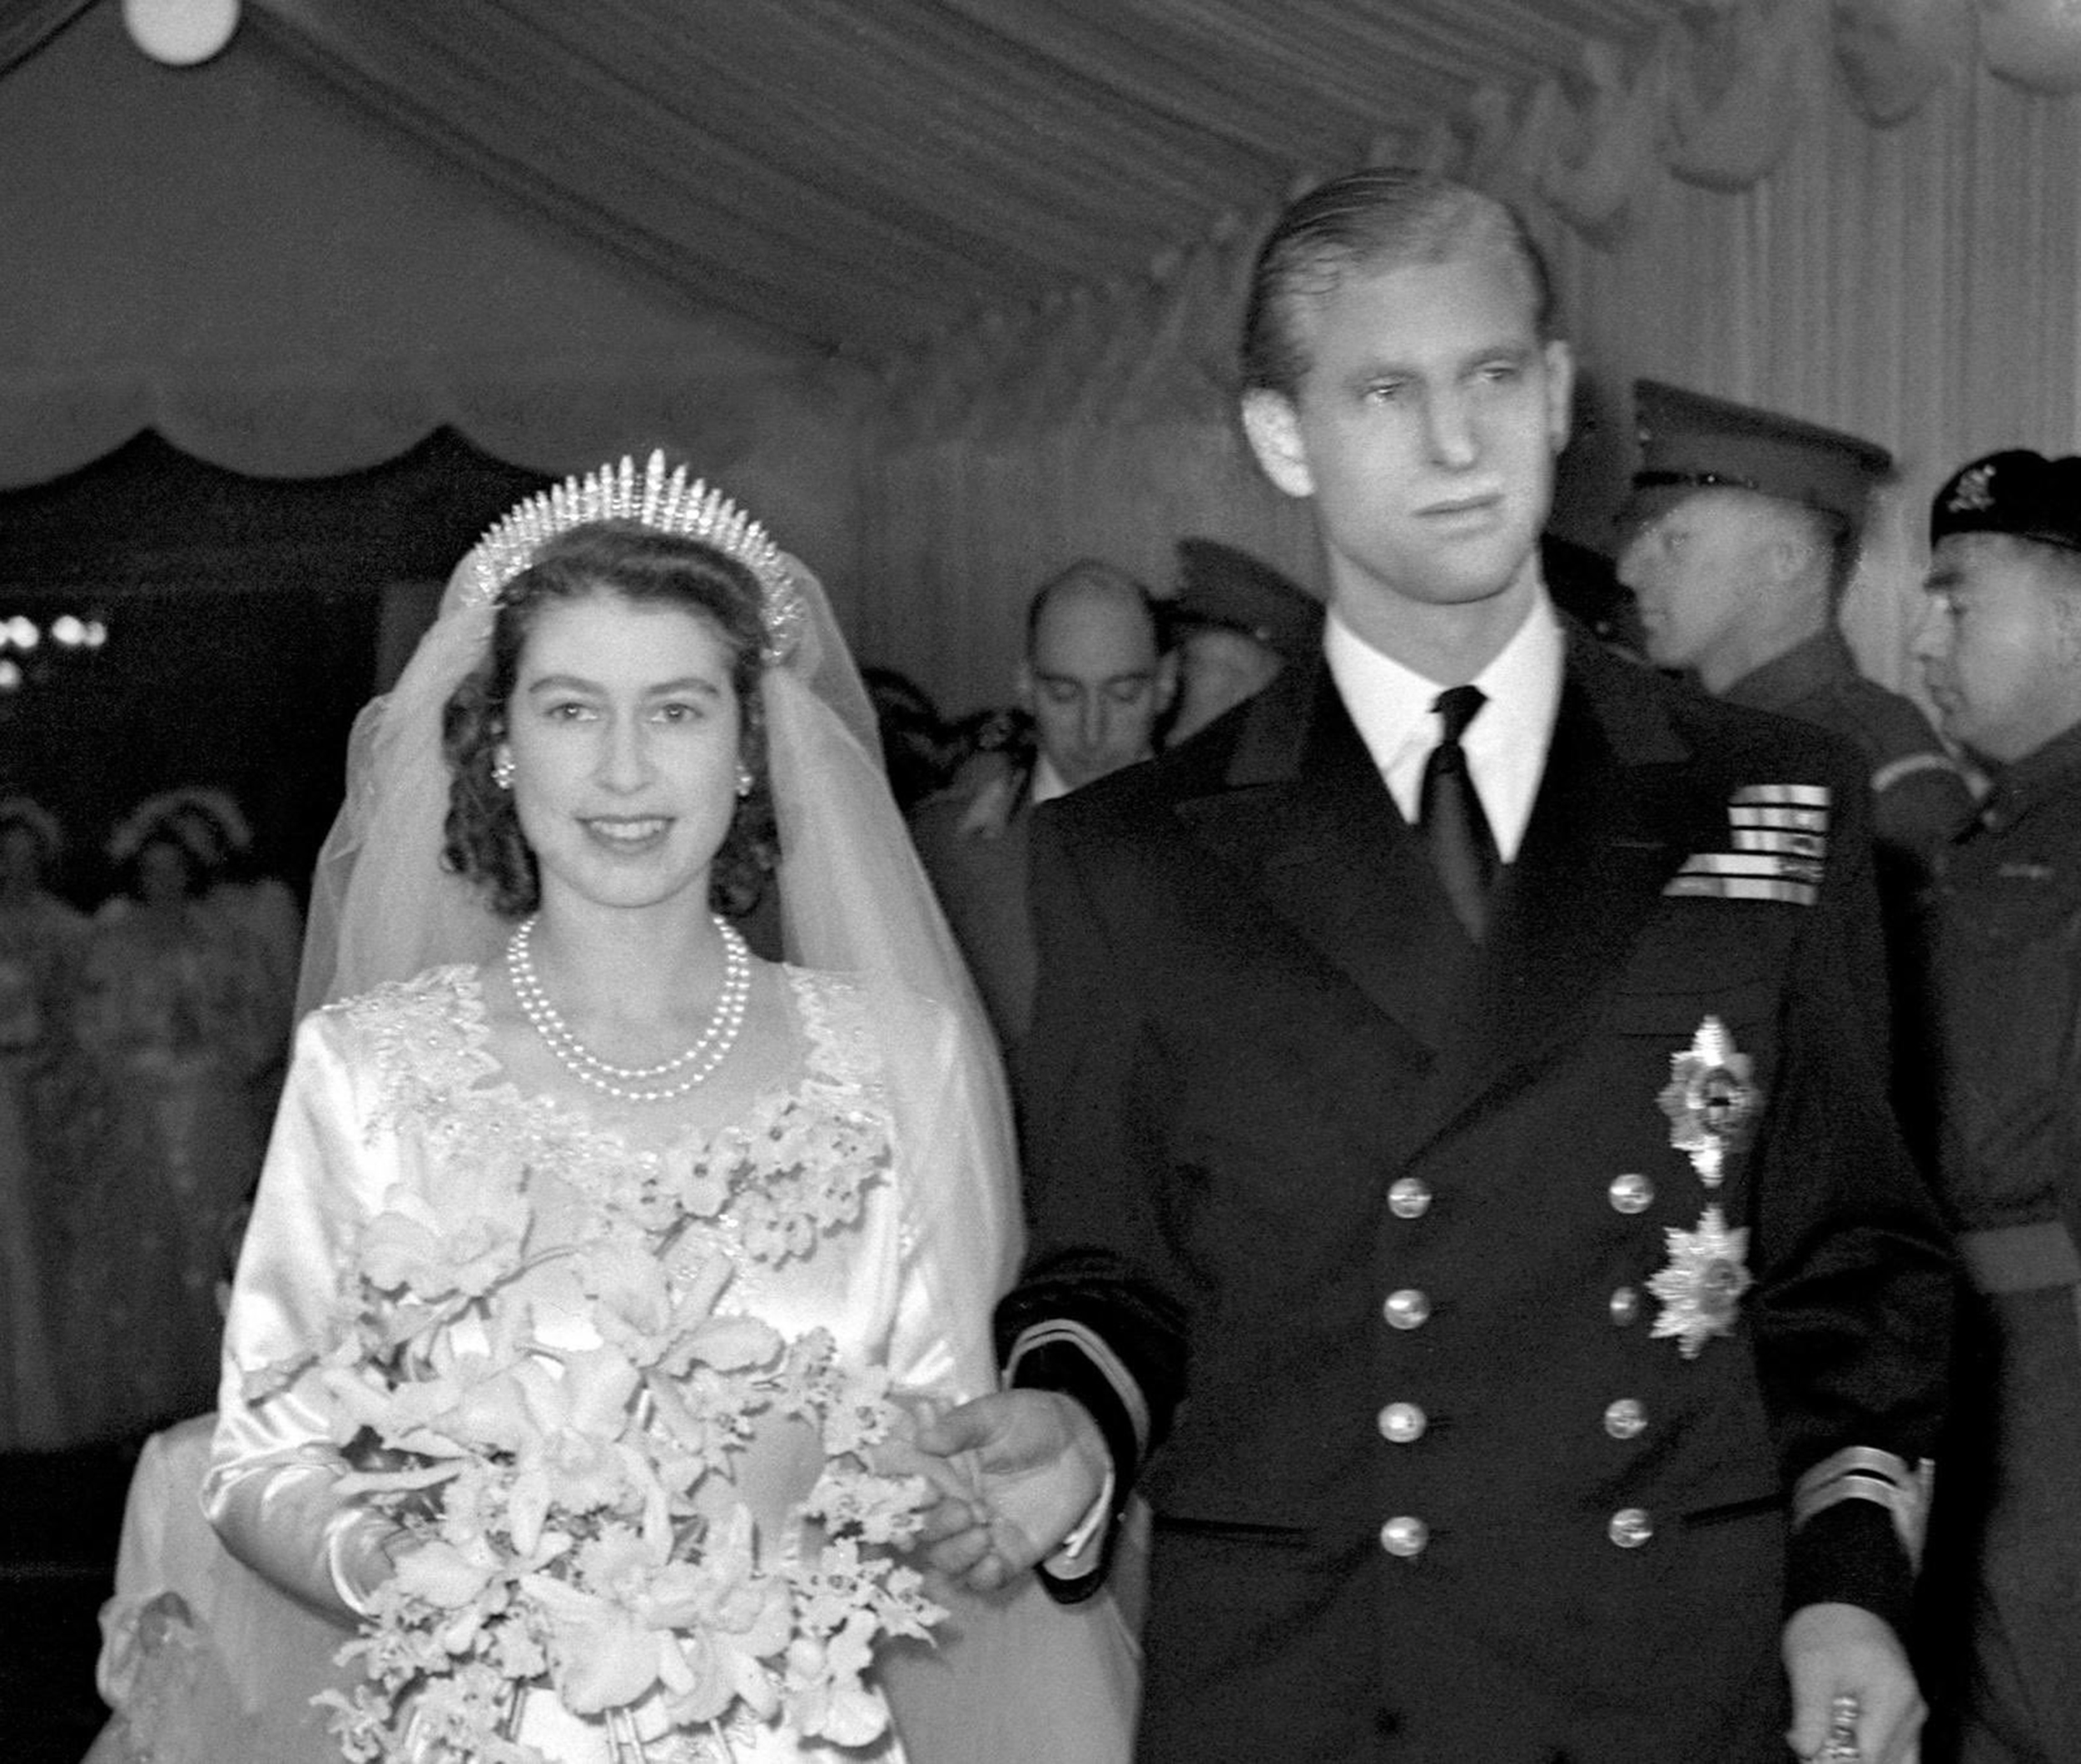 Princess Beatrice Queen Elizabeth Ii Wear Same Wedding Tiara